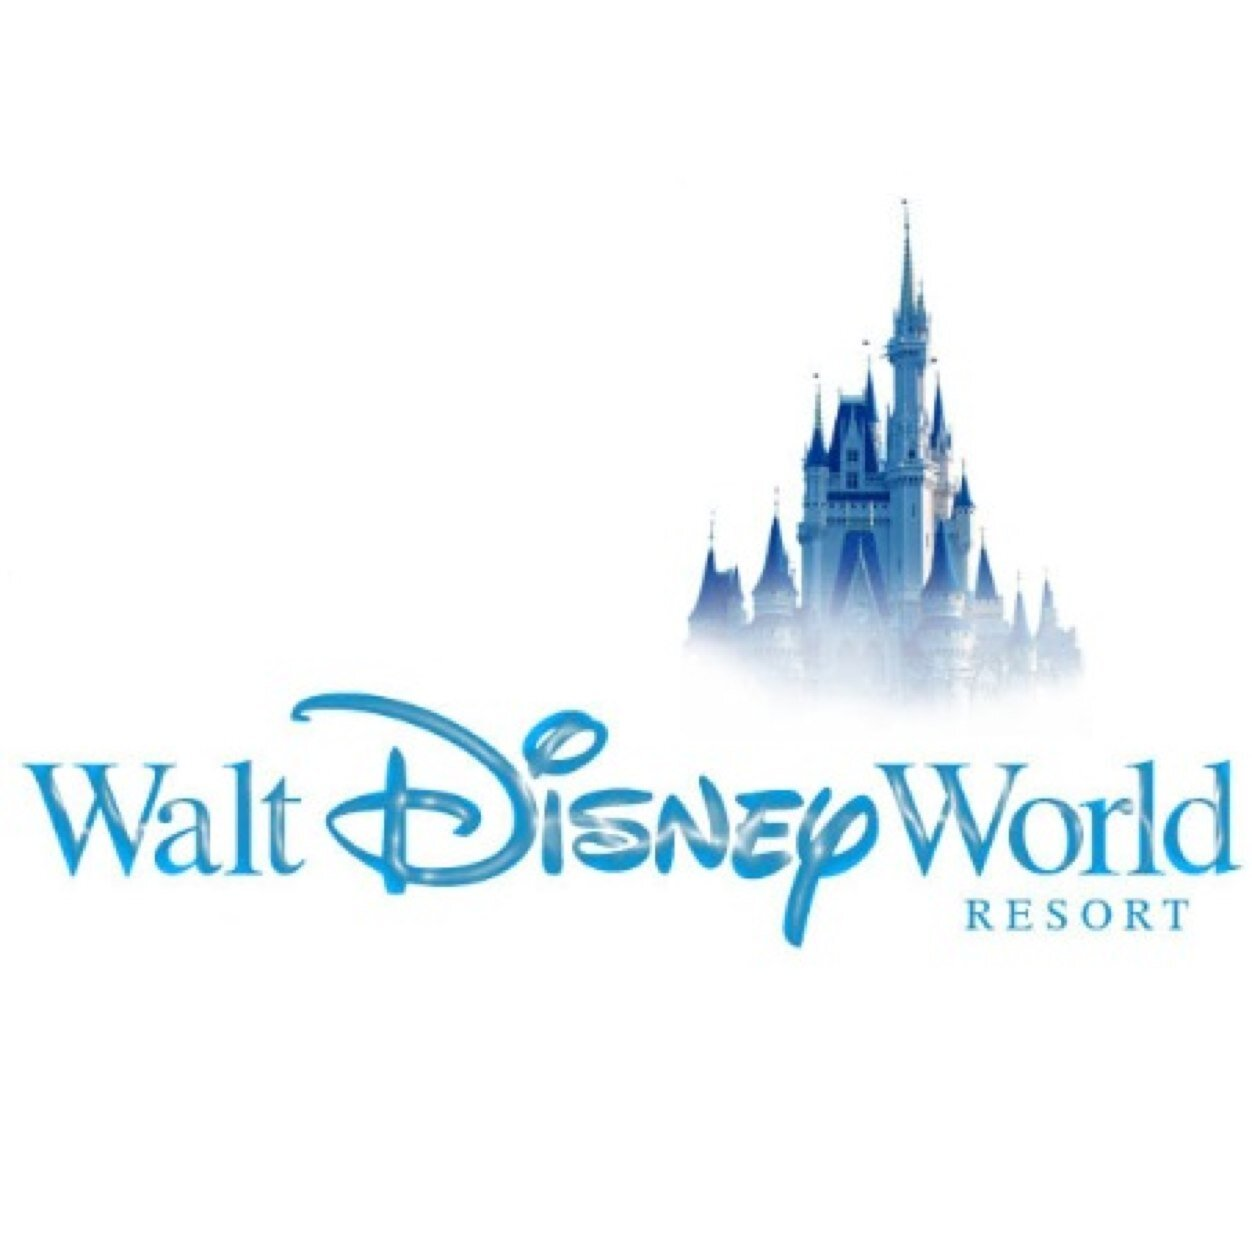 Walt Disney Resorts Wdwresorthotels Twitter Rh Com Parks World Travelers